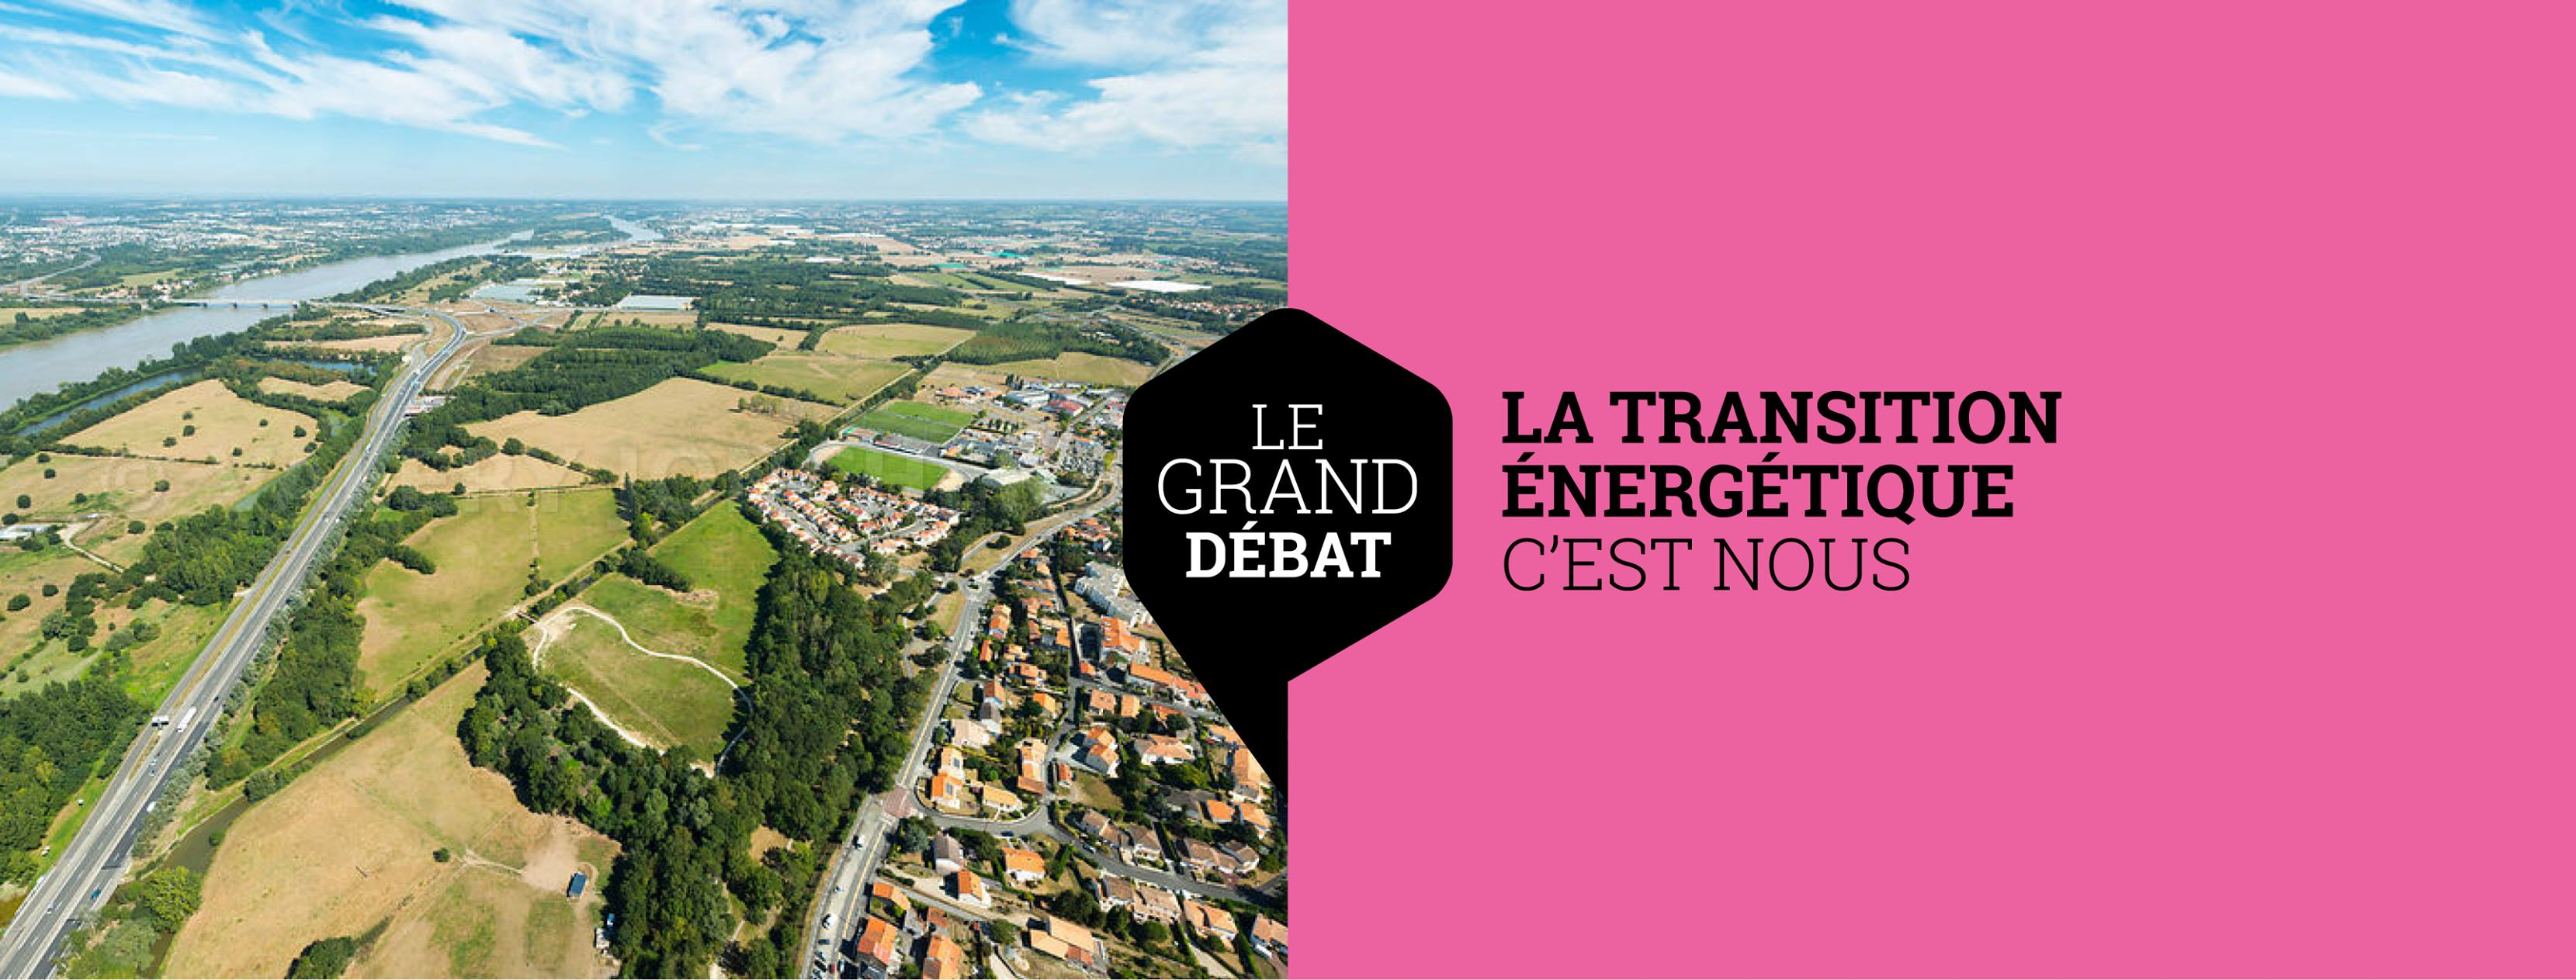 grand-debat-transitionenergetique